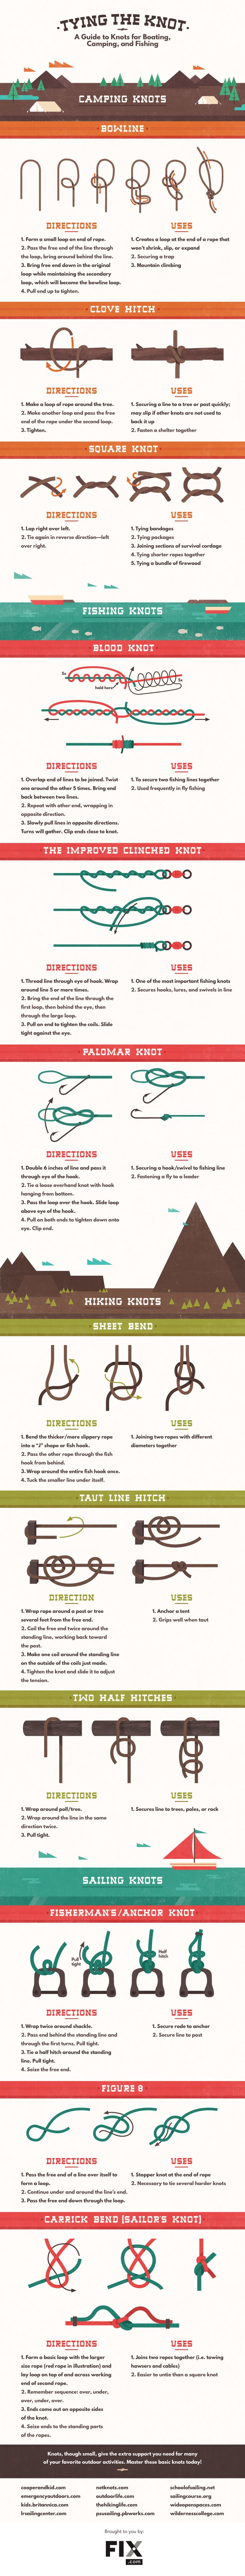 Learning how to tie great knots will impress your outdoor-loving buddies, and could even save your life! Learn how to tie some of the greats with our complete guide. #knots